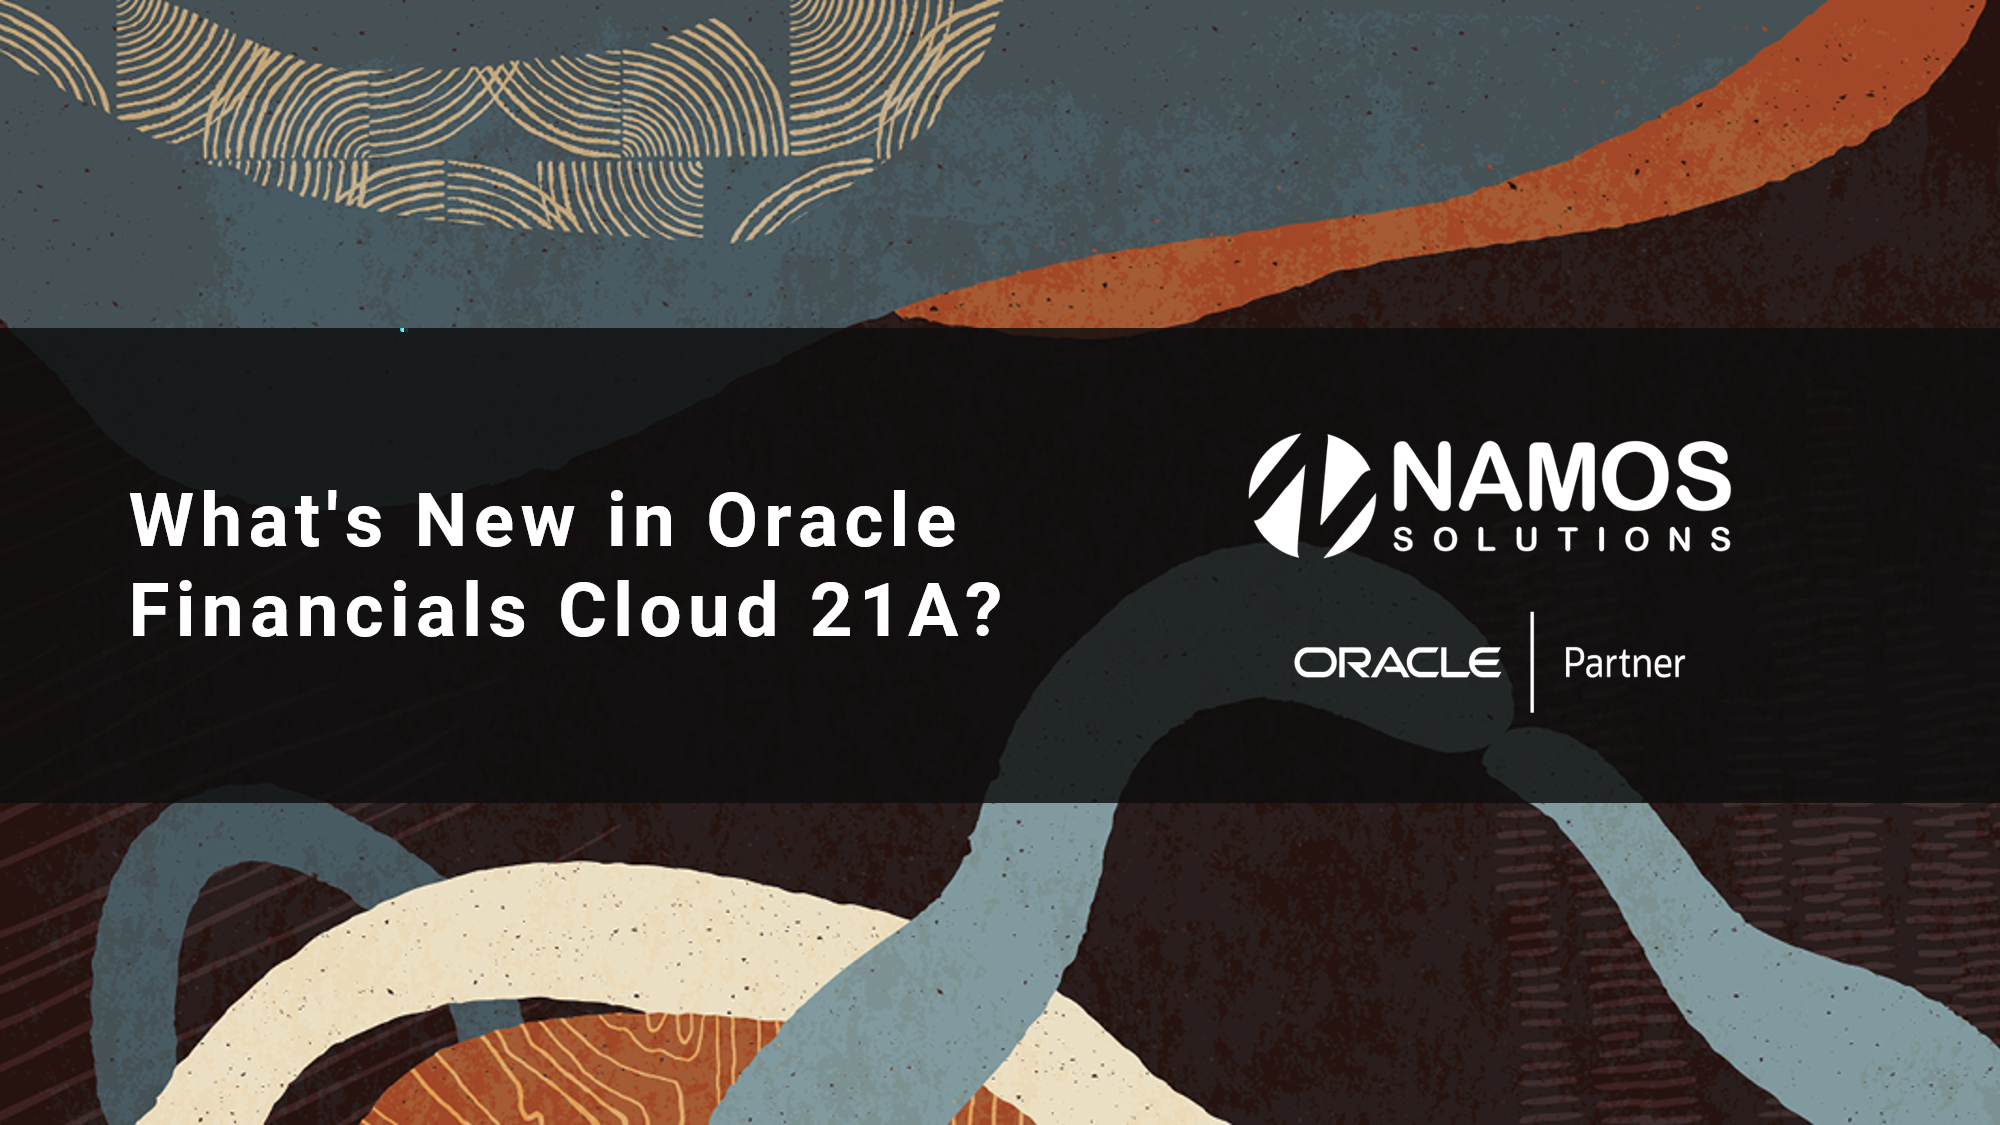 What's New in Oracle Financials Cloud 21A?